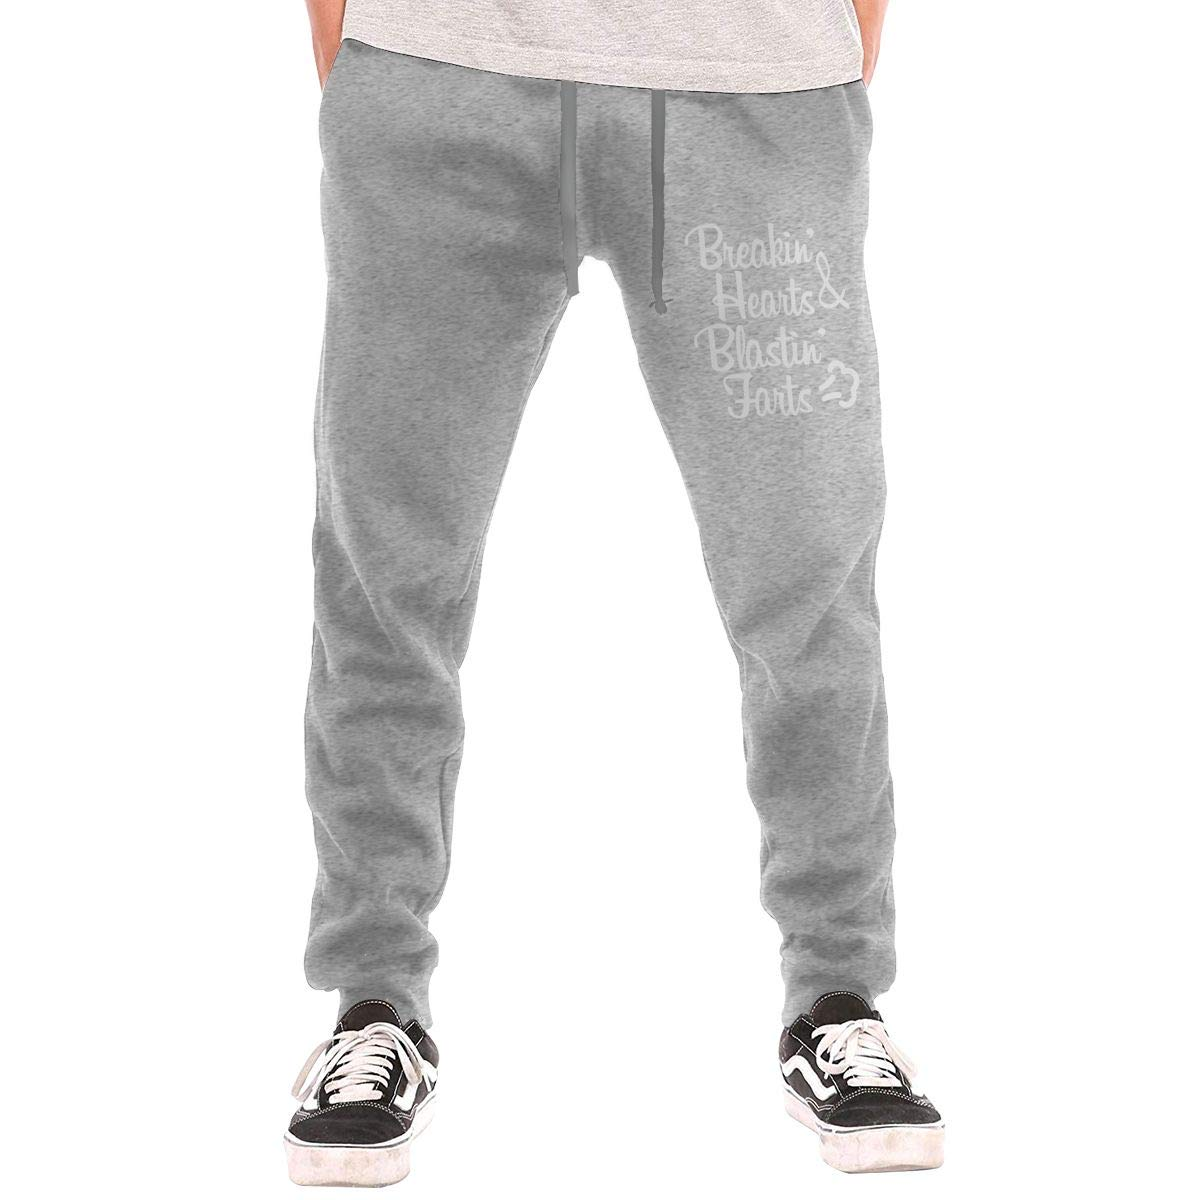 AucCen Mens Breaking Hearts and Blasting Farts Active Basic Jogger Cotton Pants